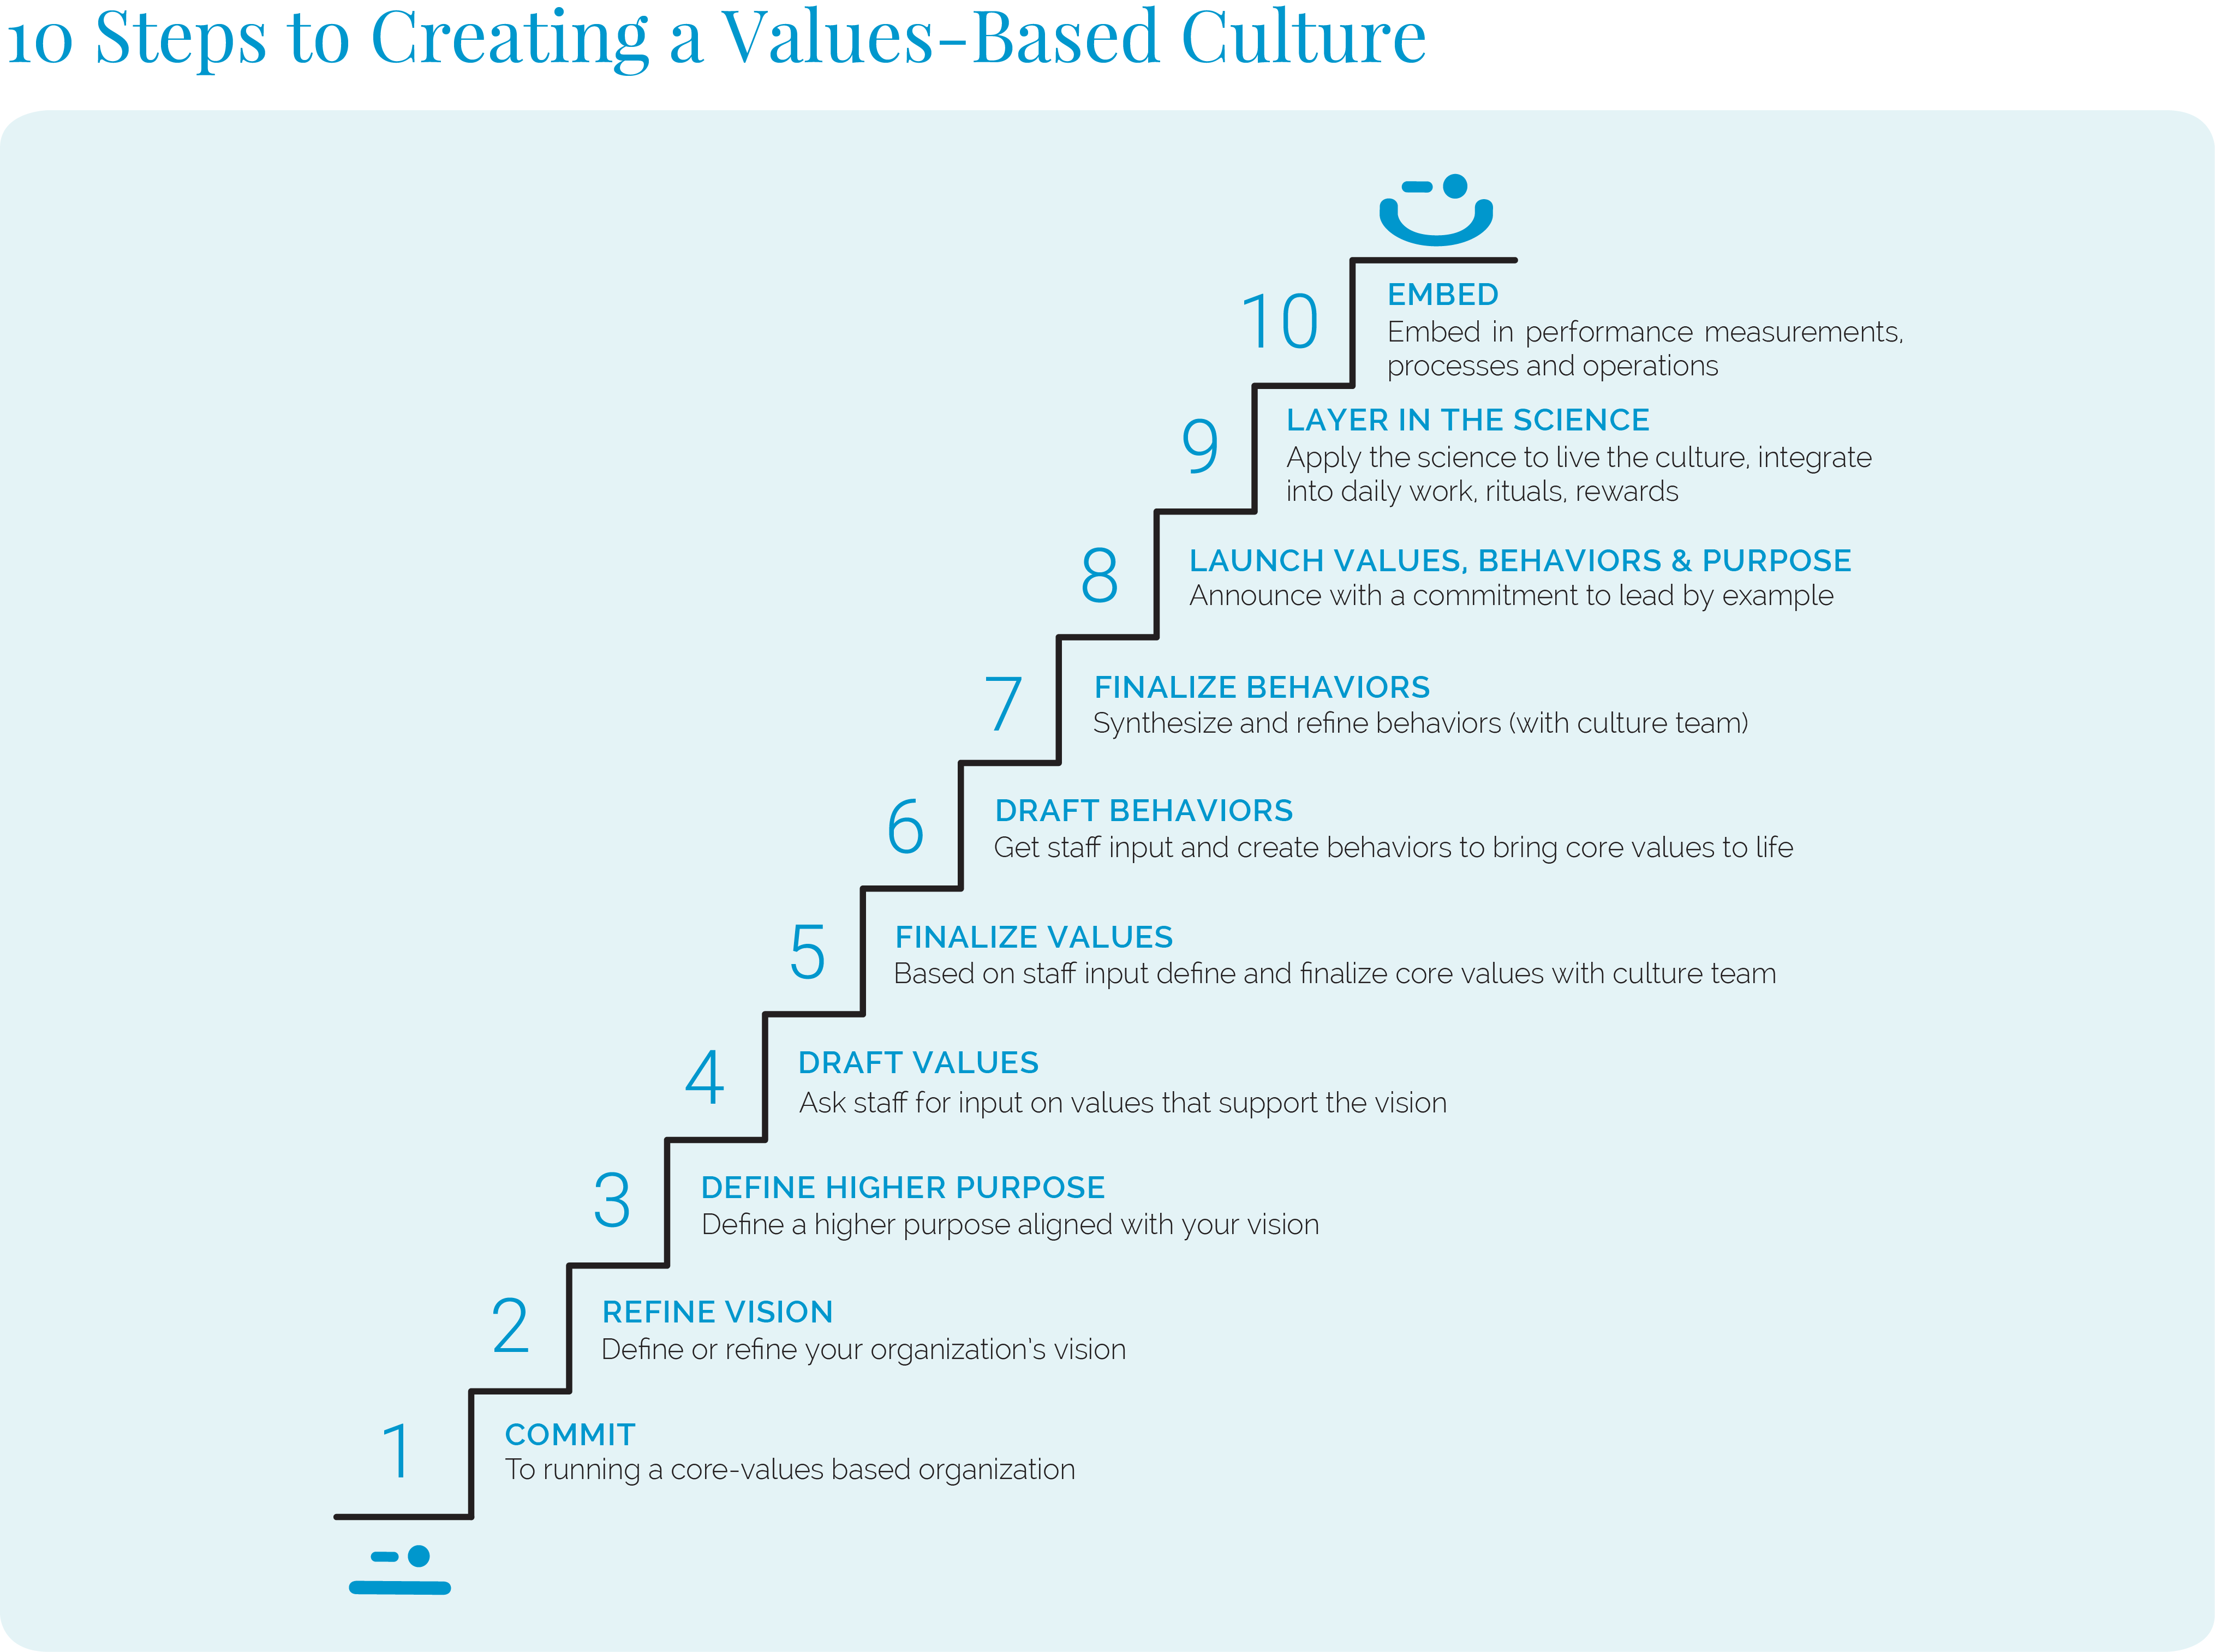 10 steps to creating core values for your company culture